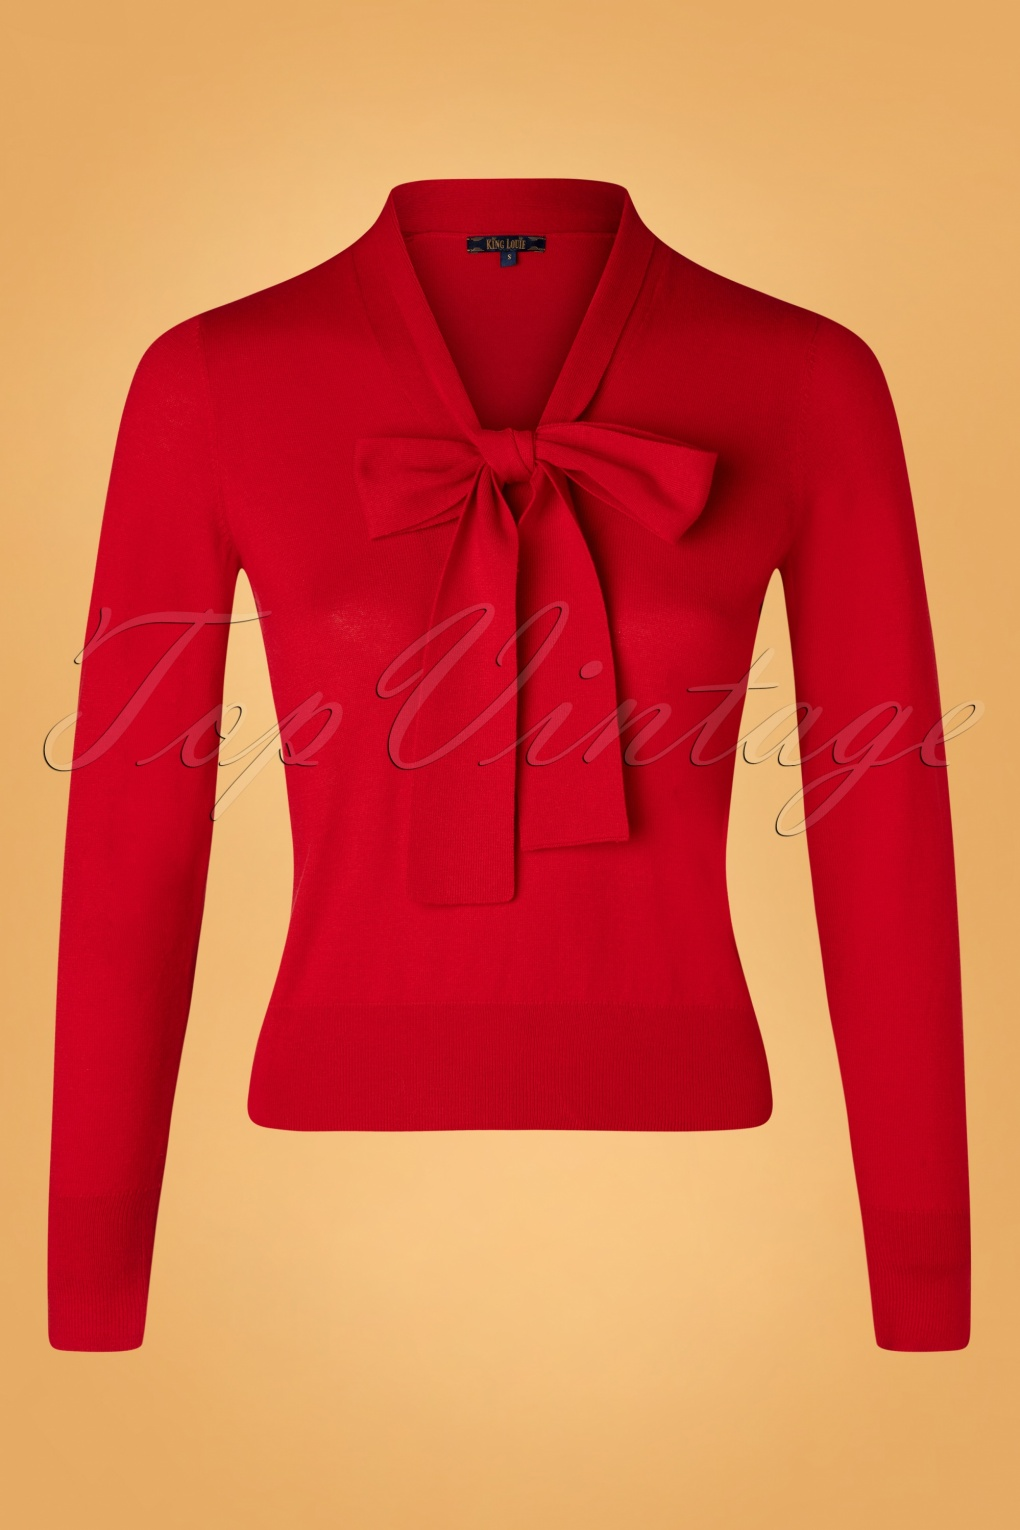 1950s Sweaters, 50s Cardigans, 50s Jumpers 50s Ellen Bow Cottonclub Top in Chili Red £59.52 AT vintagedancer.com